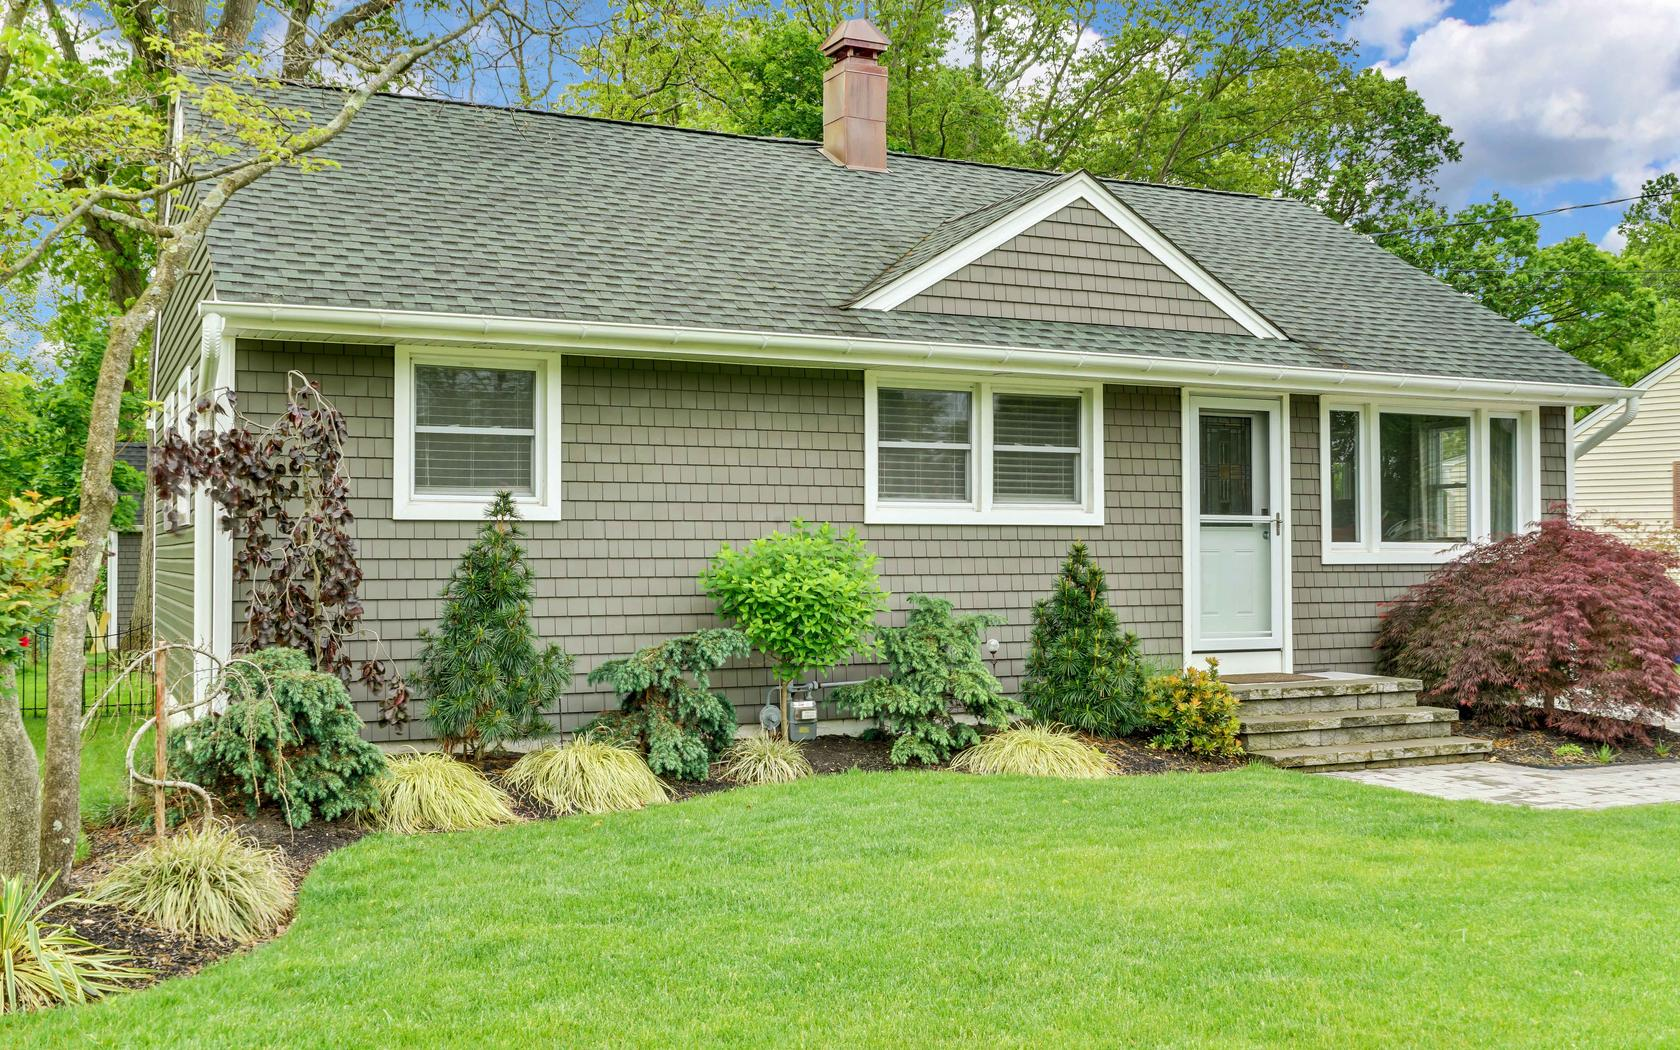 Single Family Home for Sale at Newly Renovated Ranch 204 Cliffwood Dr Neptune, New Jersey 07753 United States